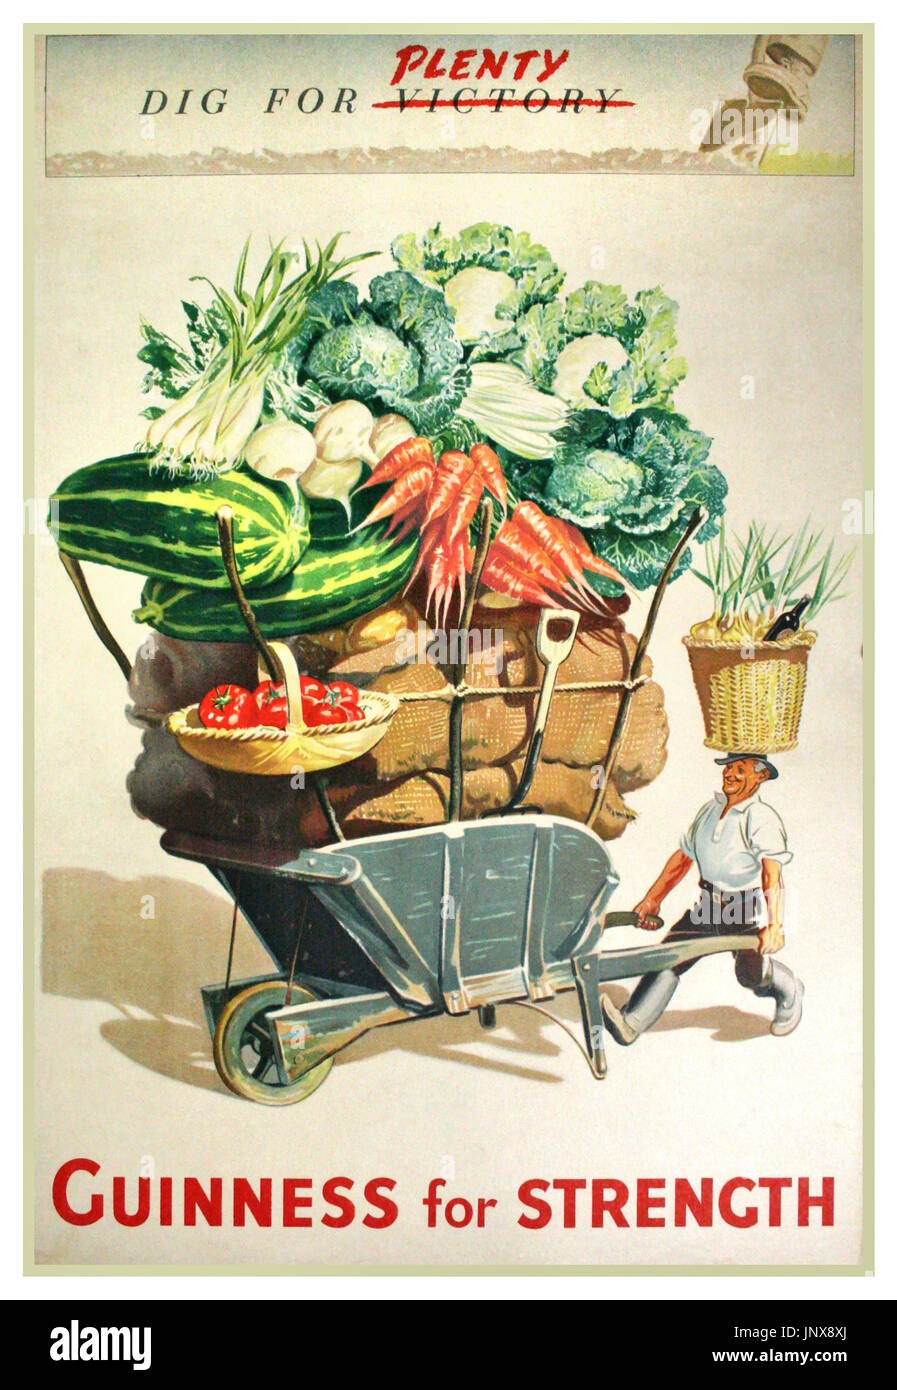 WW2 British Propaganda Advertising poster 1940's Dig for (Victory) Plenty  promoting Guinness for strength to dig for plenty and produce vegetables for victory - Stock Image